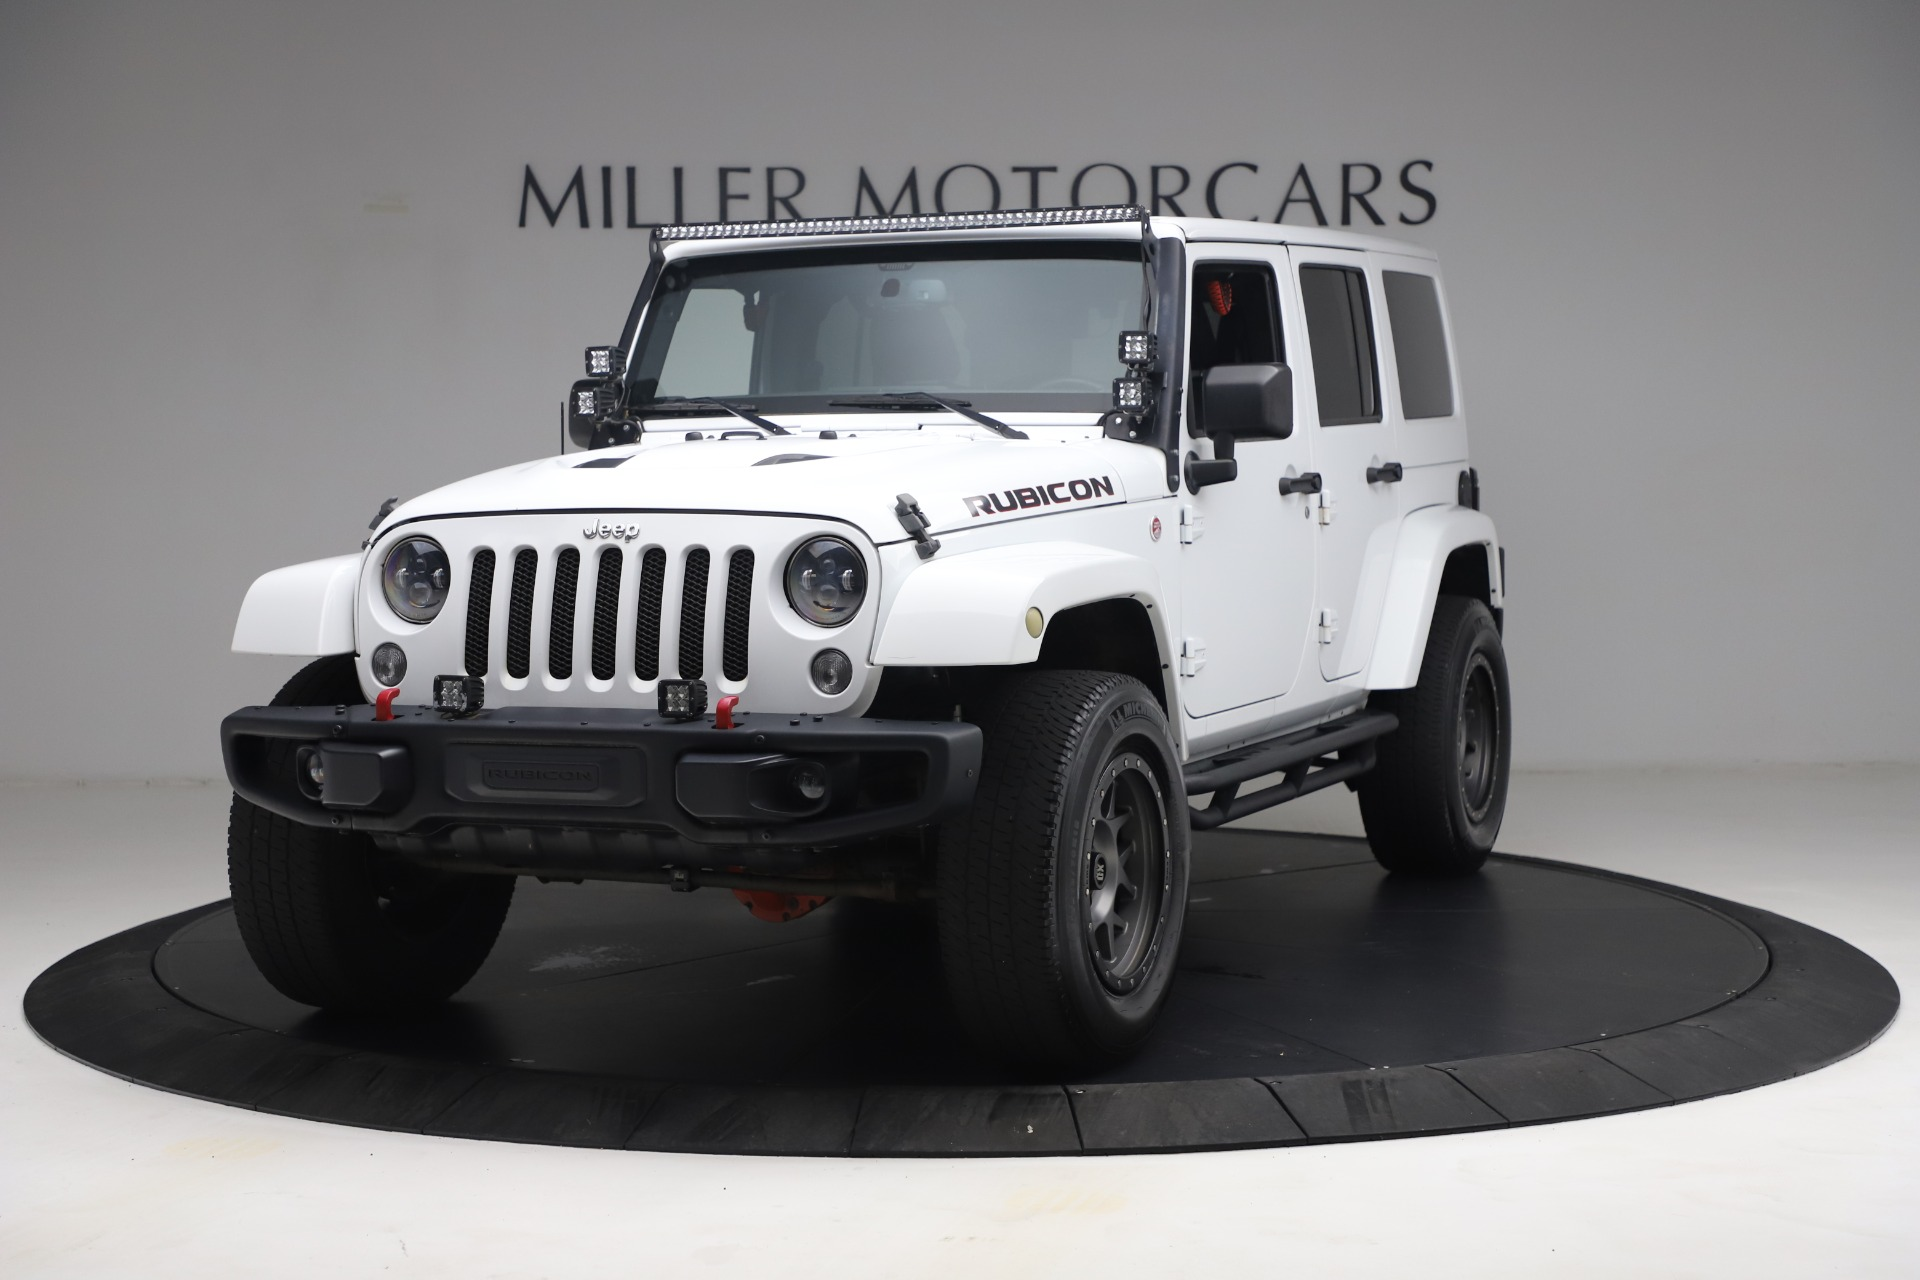 Used 2015 Jeep Wrangler Unlimited Rubicon Hard Rock for sale $39,900 at Alfa Romeo of Greenwich in Greenwich CT 06830 1